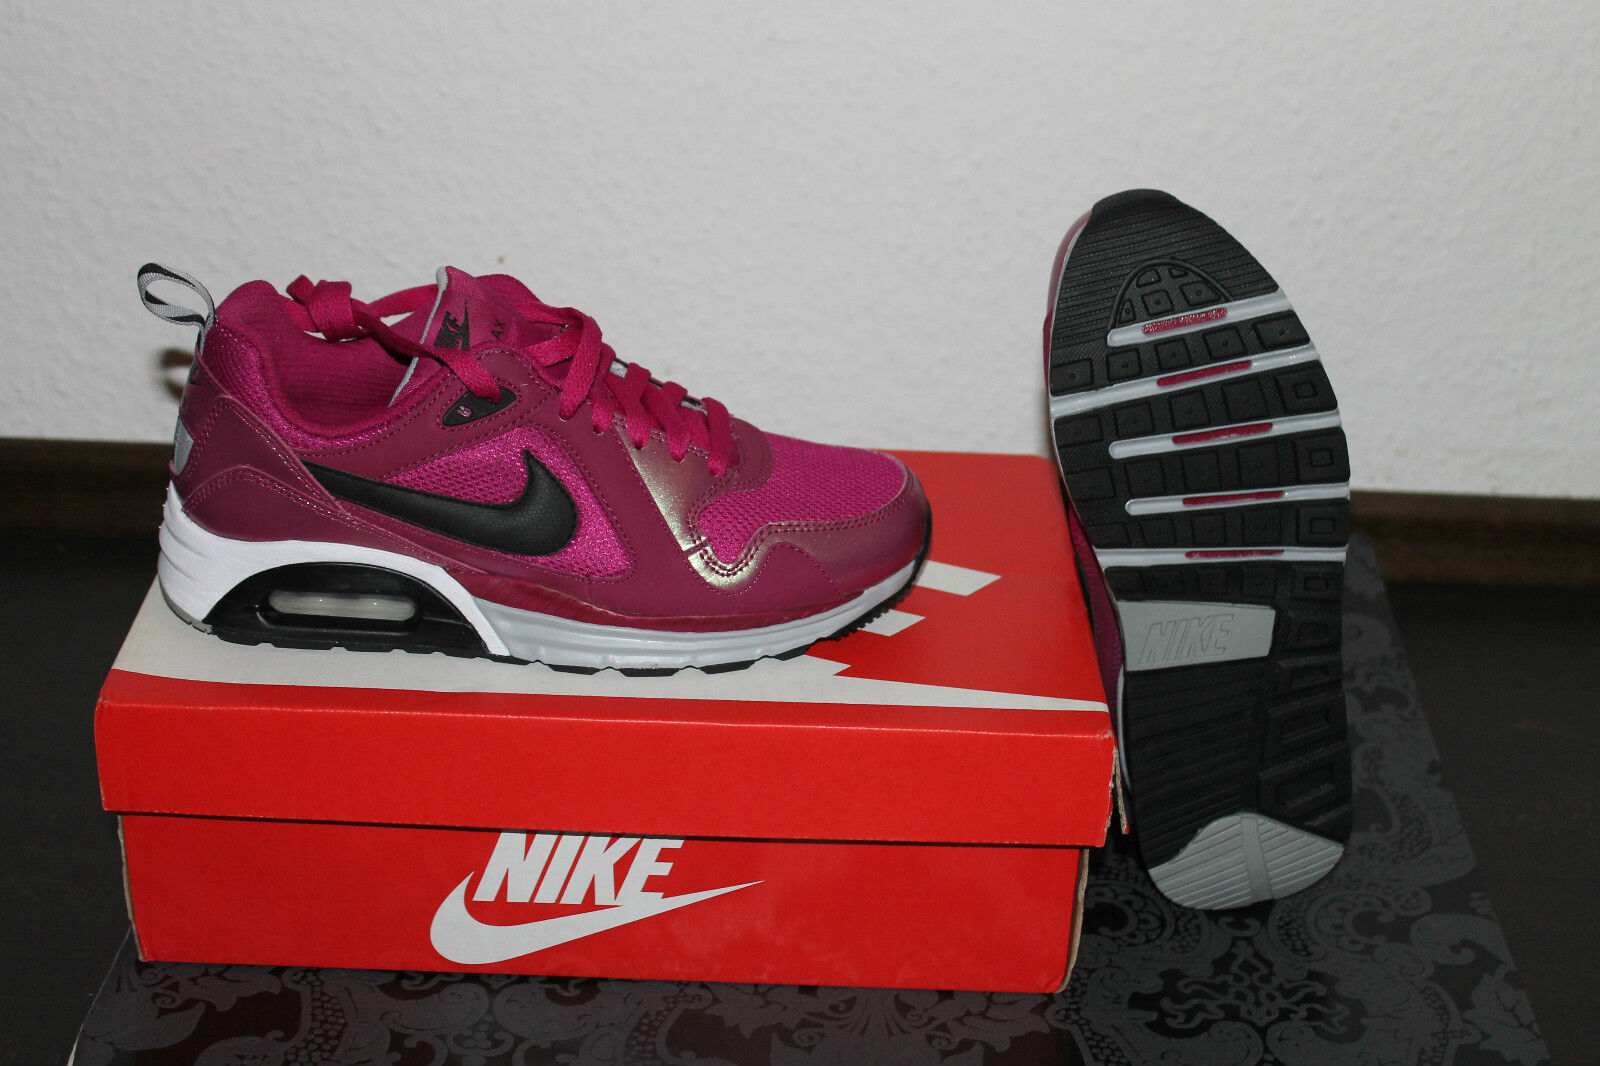 Nike Air Max Trax Running Pour Femmes Rose Bottes Rose Femmes Blanc Taille 38, UK 5 Neuf cdc937